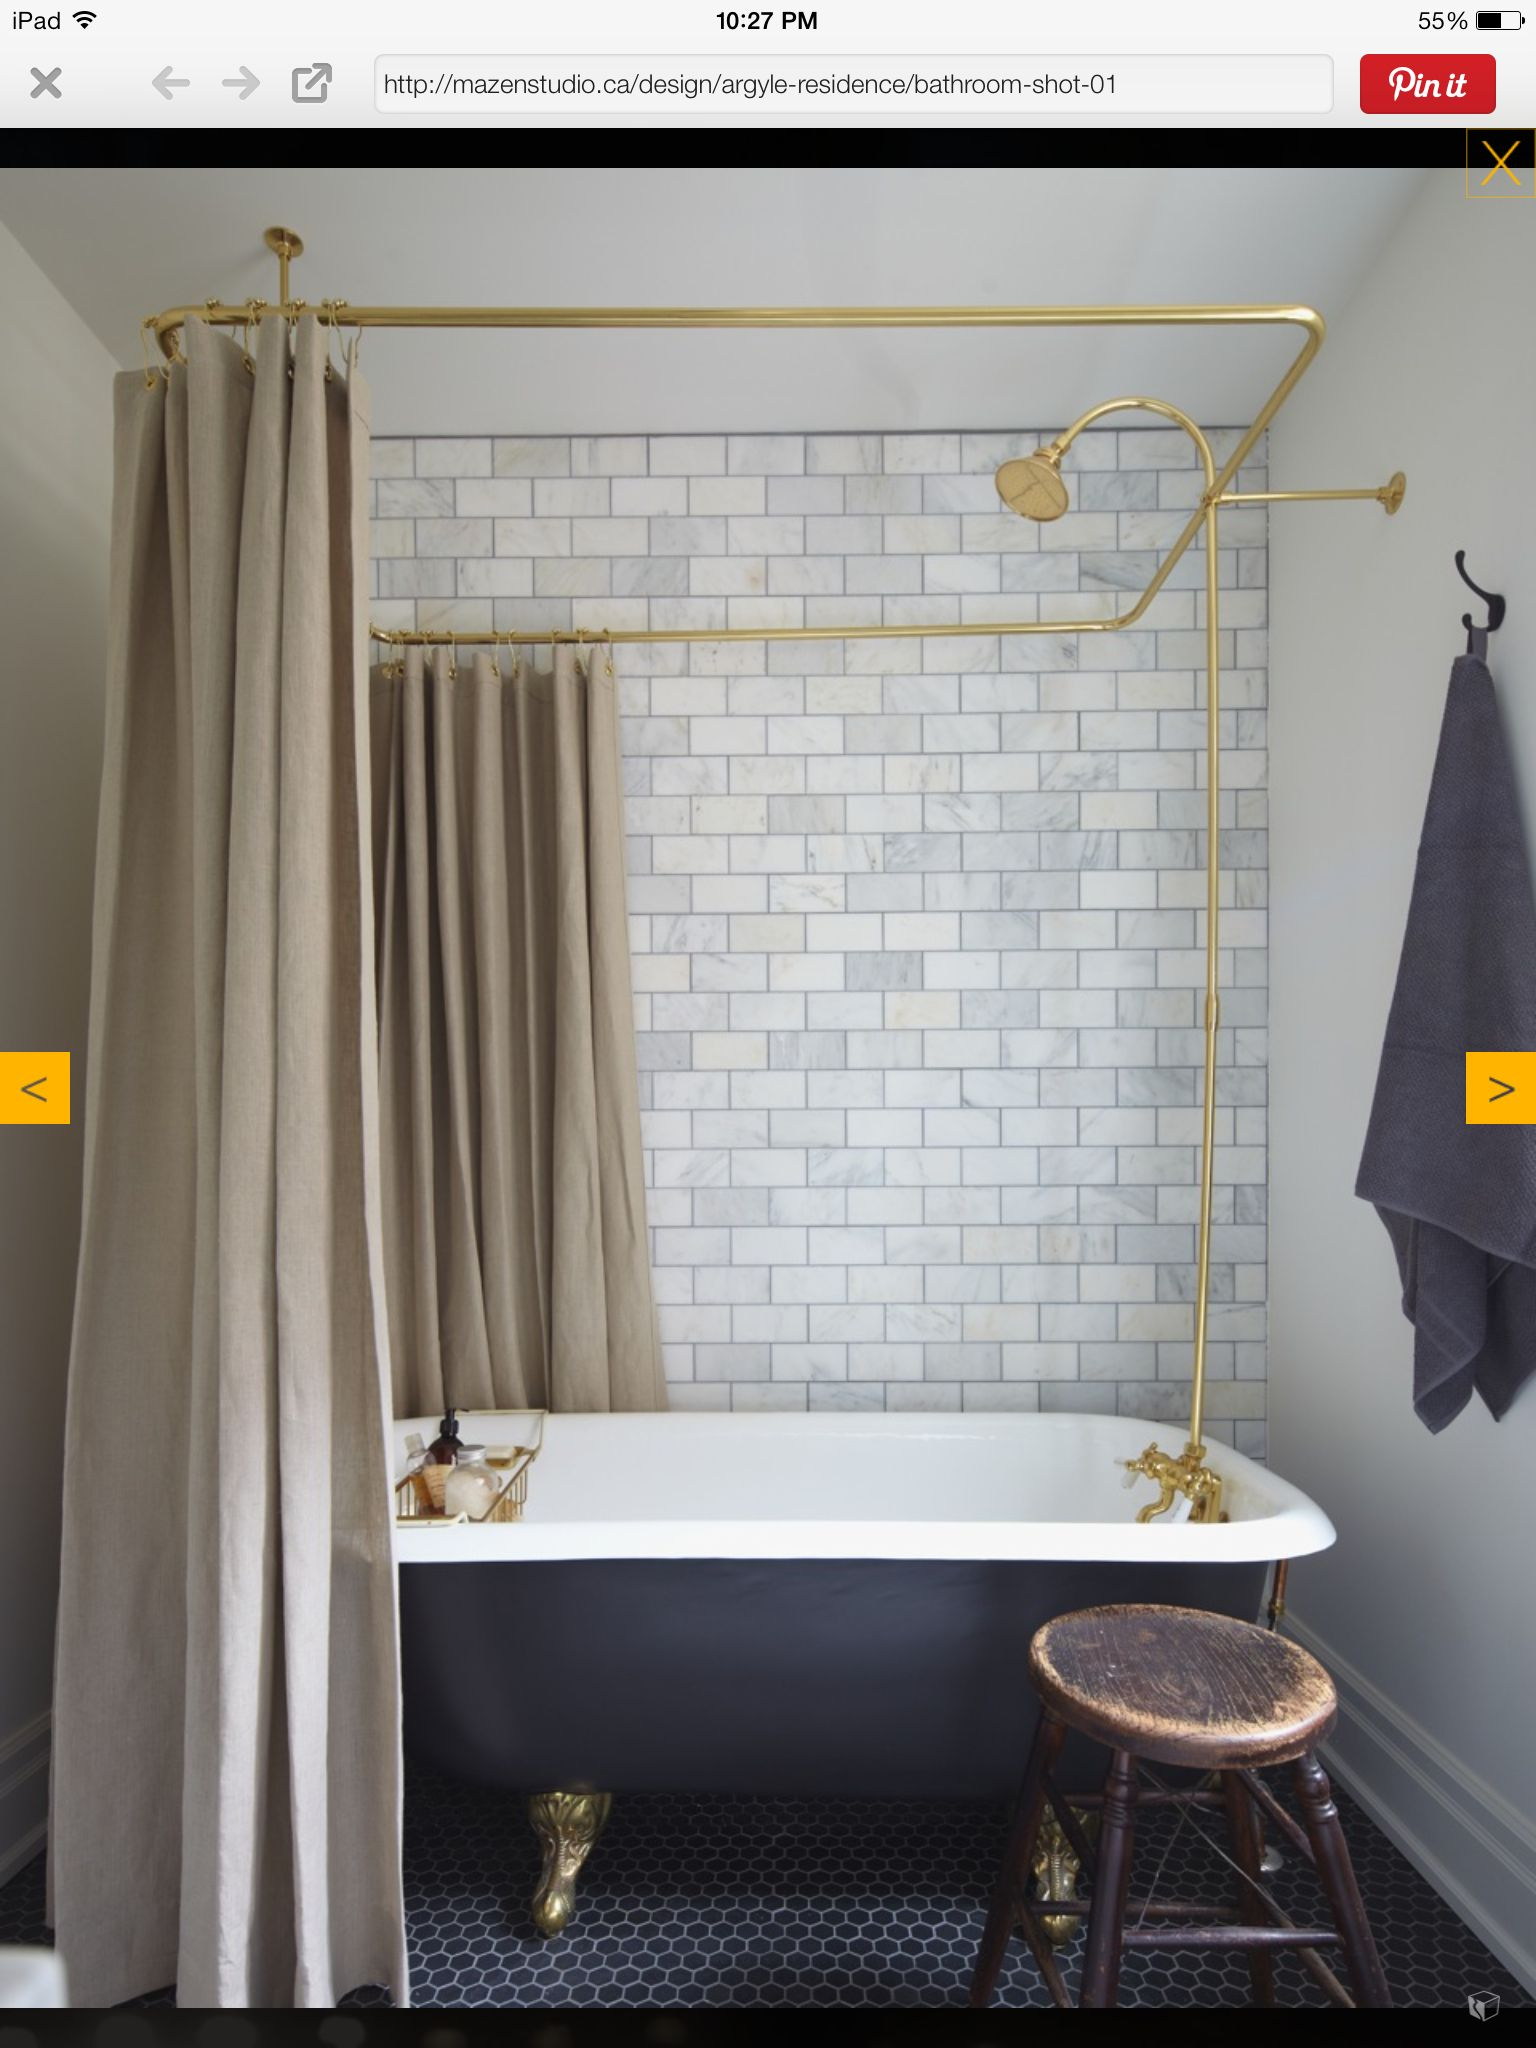 Pin by Anna Campbell on Interiors | Pinterest | Amazing bathrooms ...